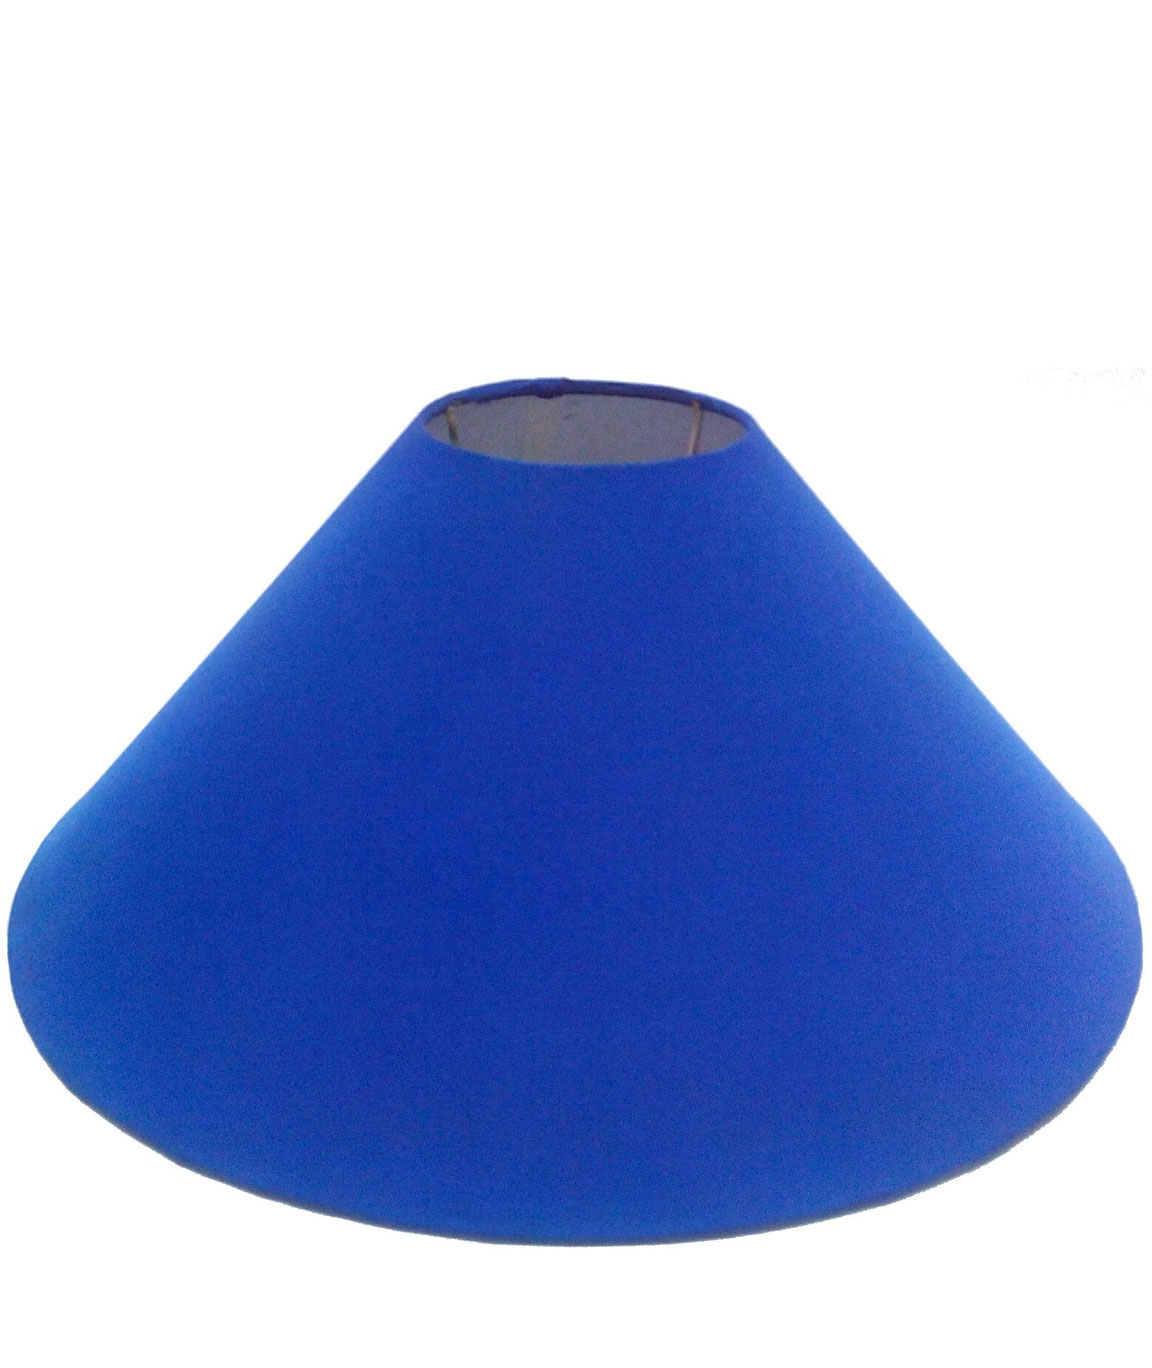 RDC 13 Inches Round Plain Indigo Lamp Shade for Table Lamp